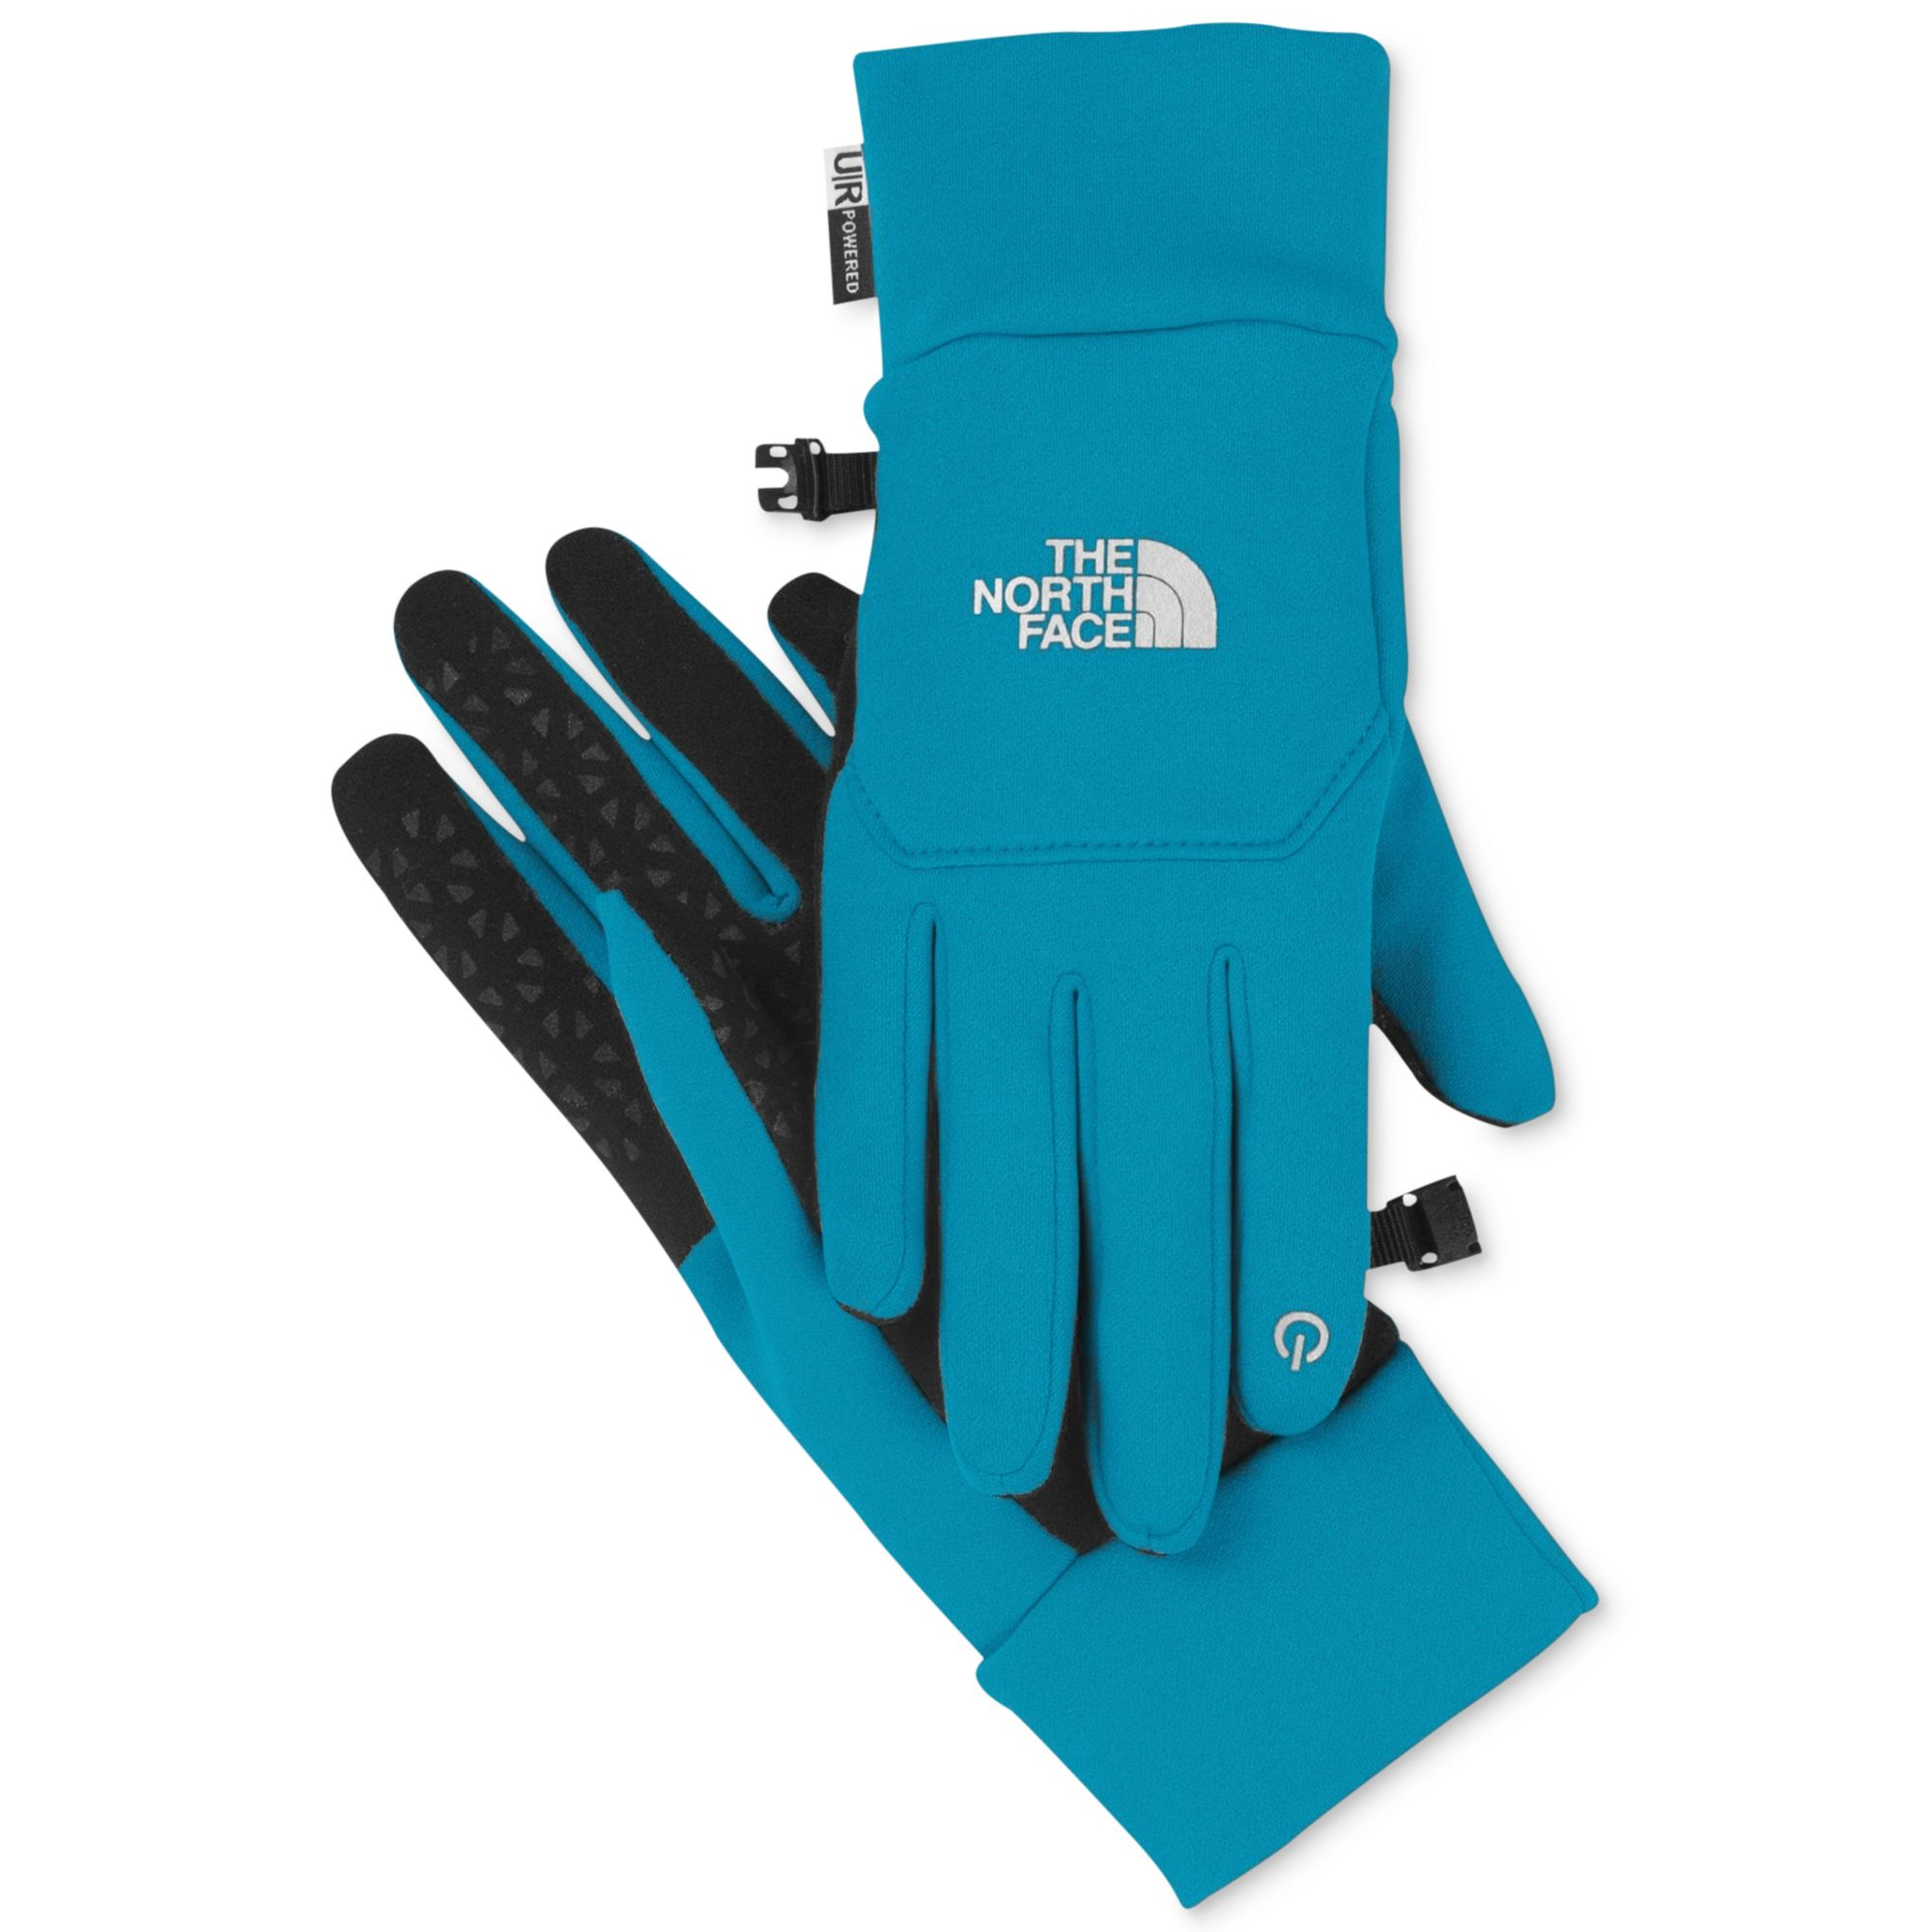 741144d76 The North Face Blue gloves